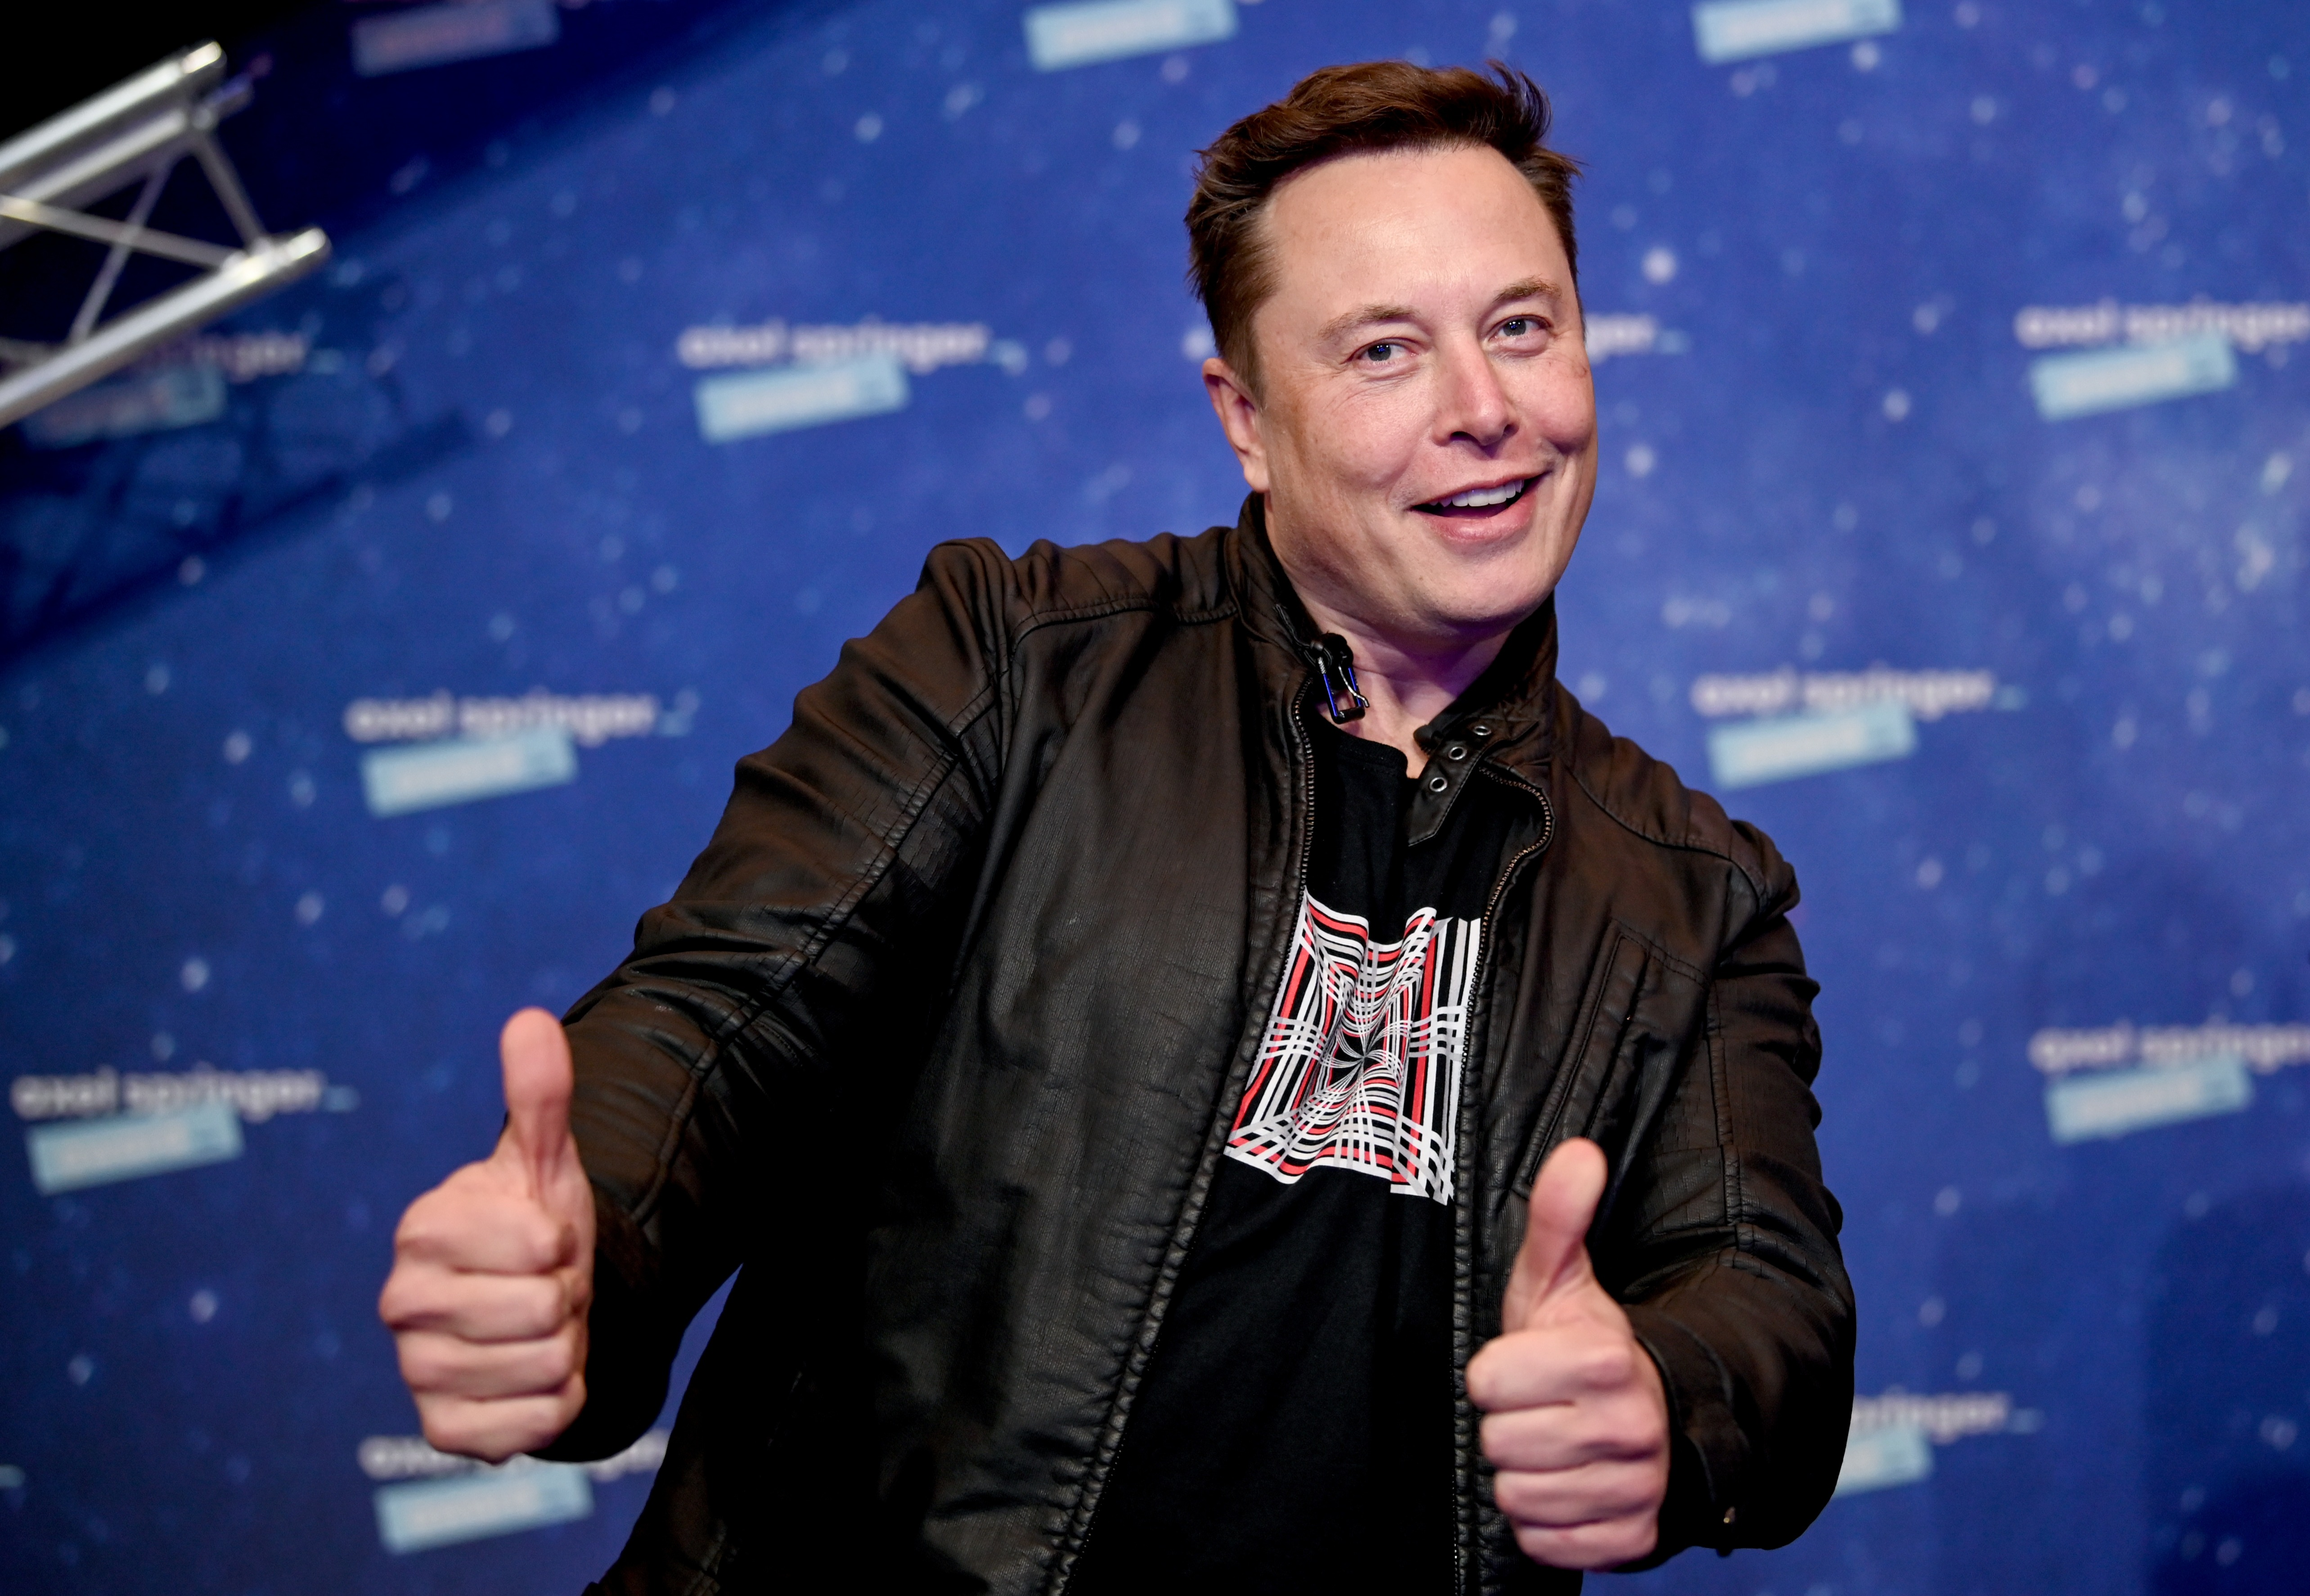 Elon Musk founded SpaceX in 2002